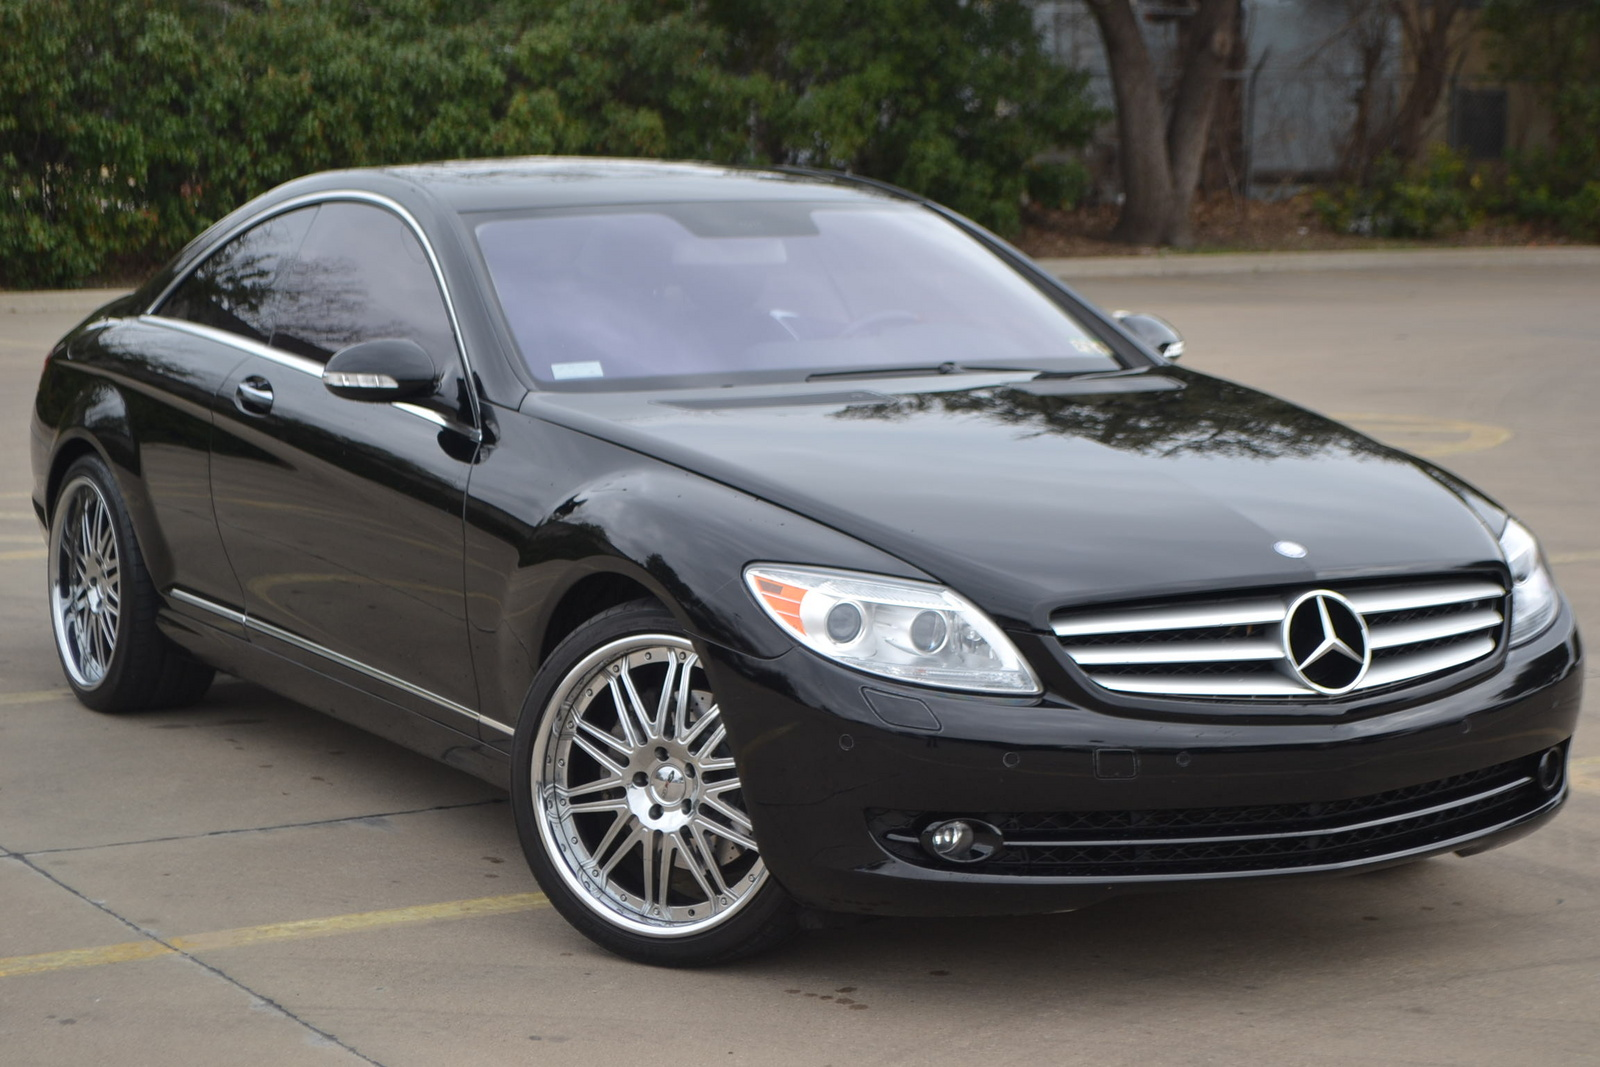 2007 mercedes benz cl class pictures cargurus for Mercedes benz cl600 for sale